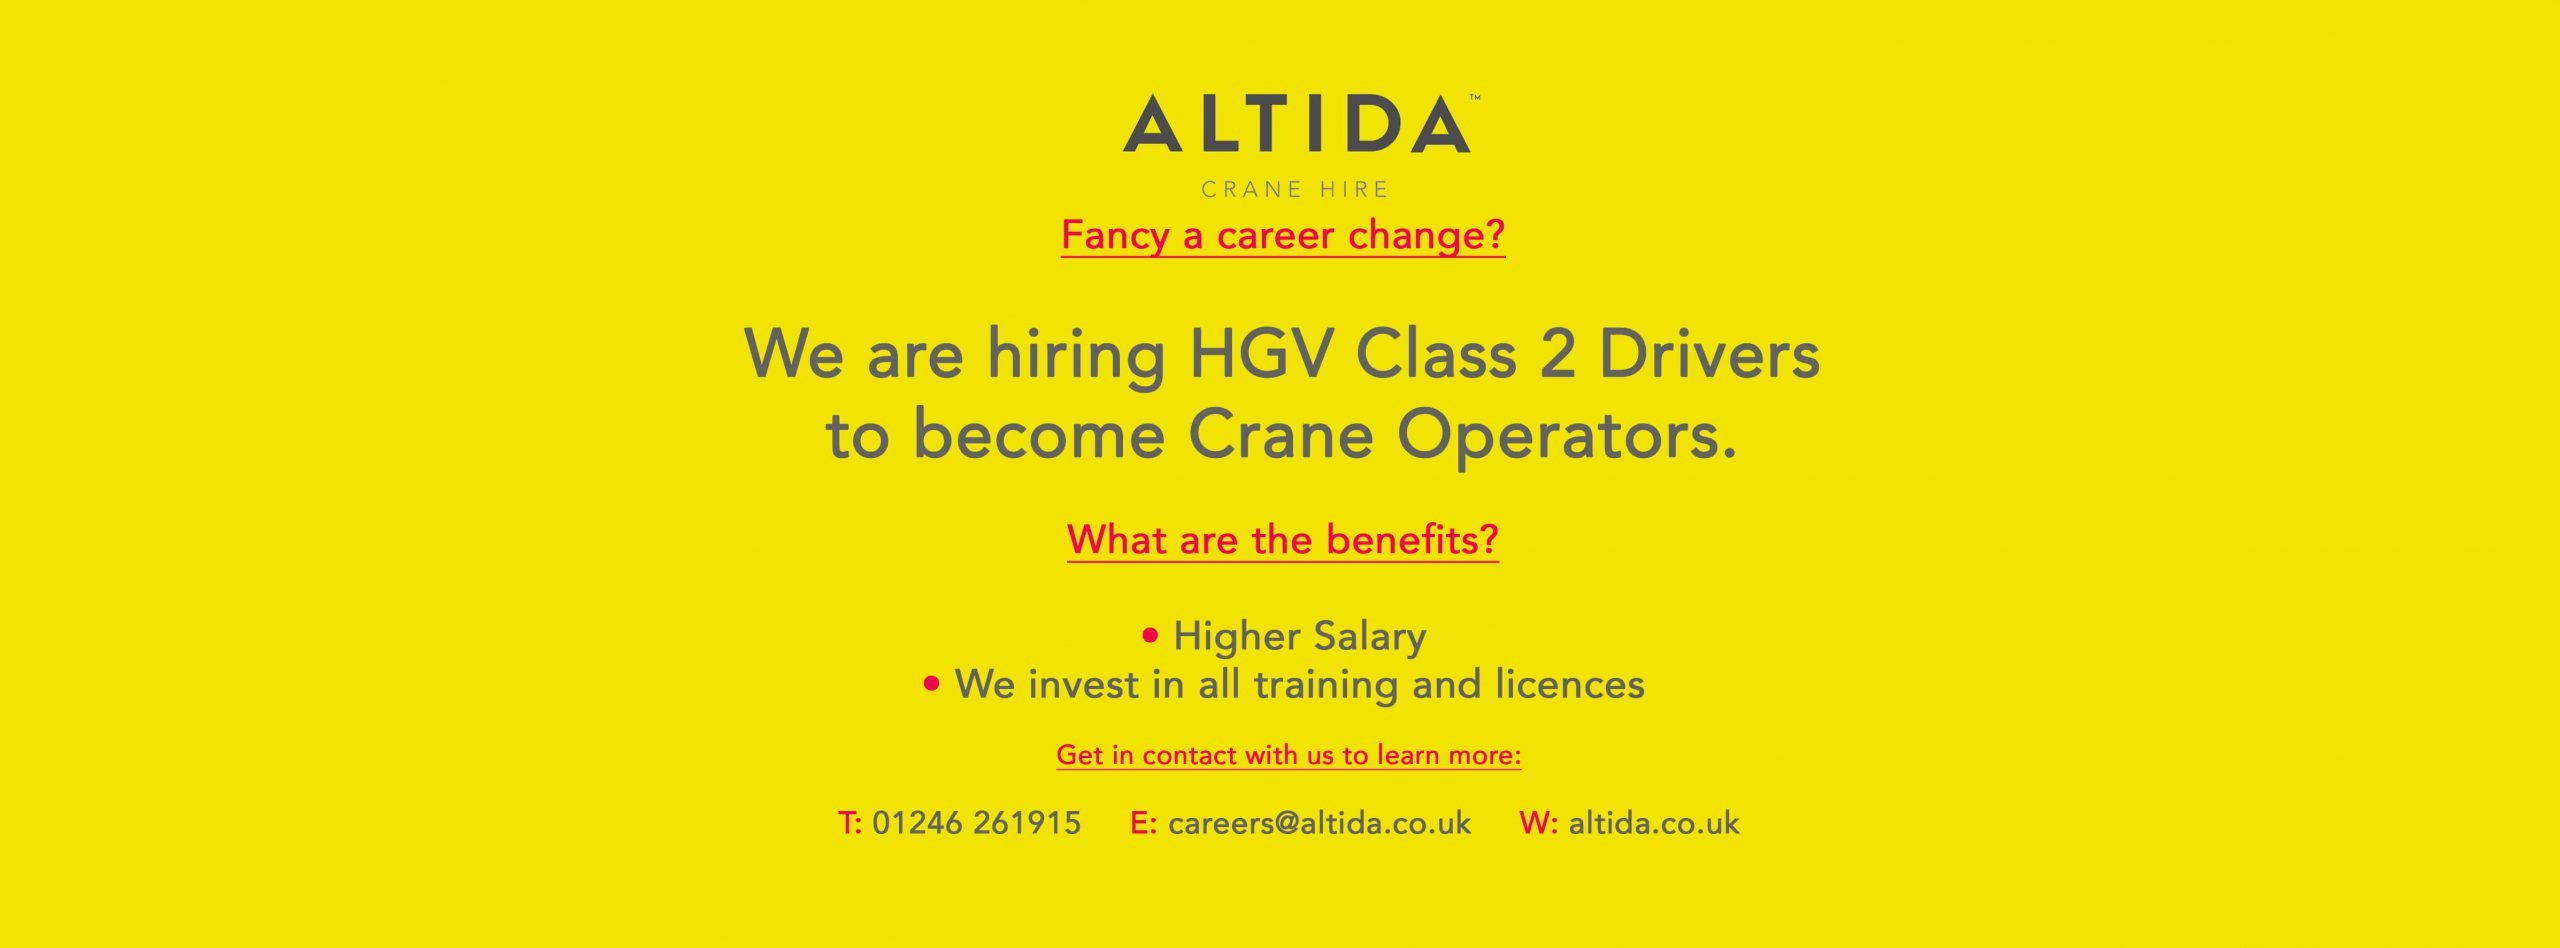 Resized HGV Class 2 Advert scaled